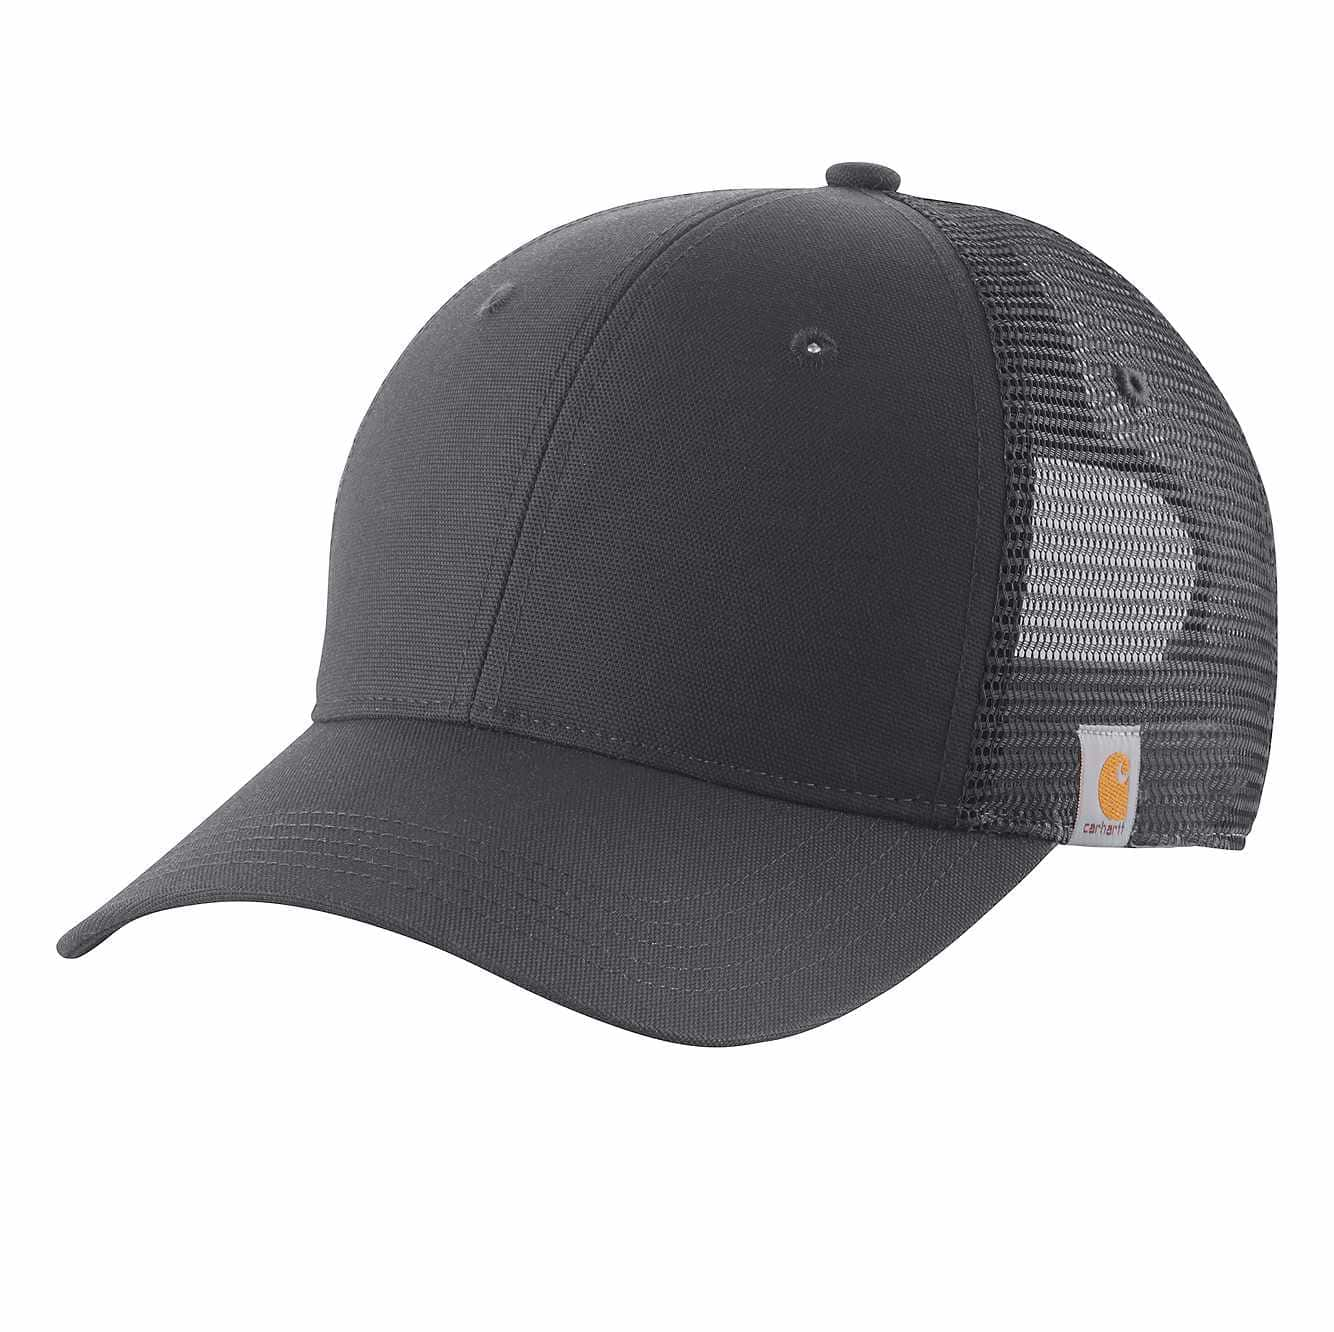 Picture of Rugged Professional™ Series Baseball Cap in Shadow